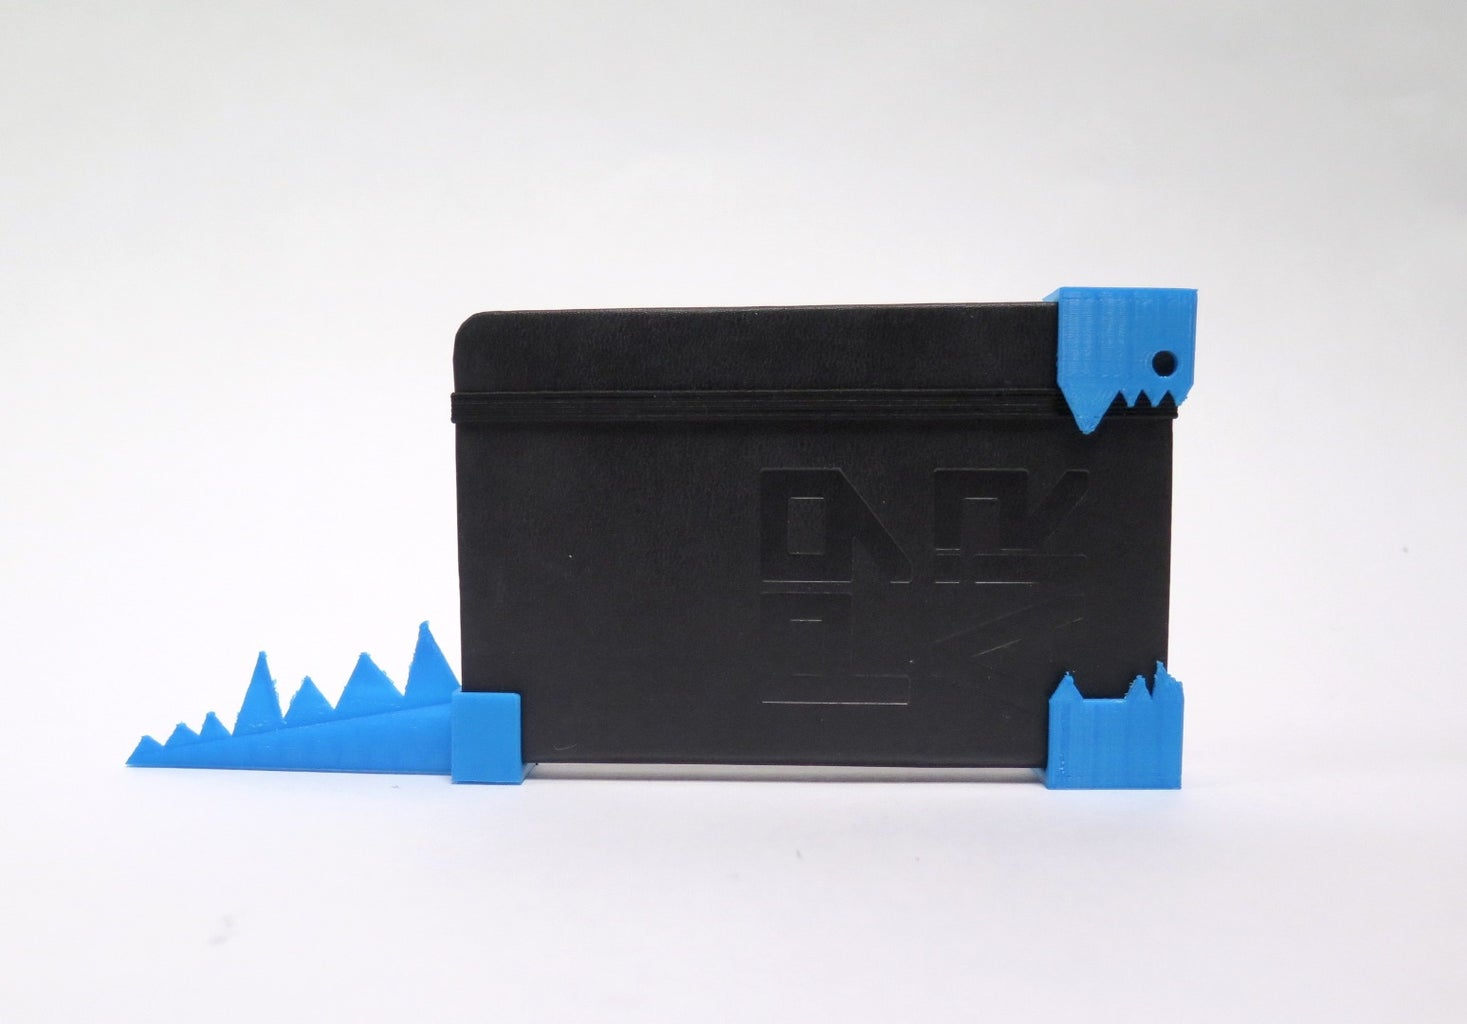 Turn Your Moleskin Into a Shark Dinosaur Monster With 3D Printed Parts